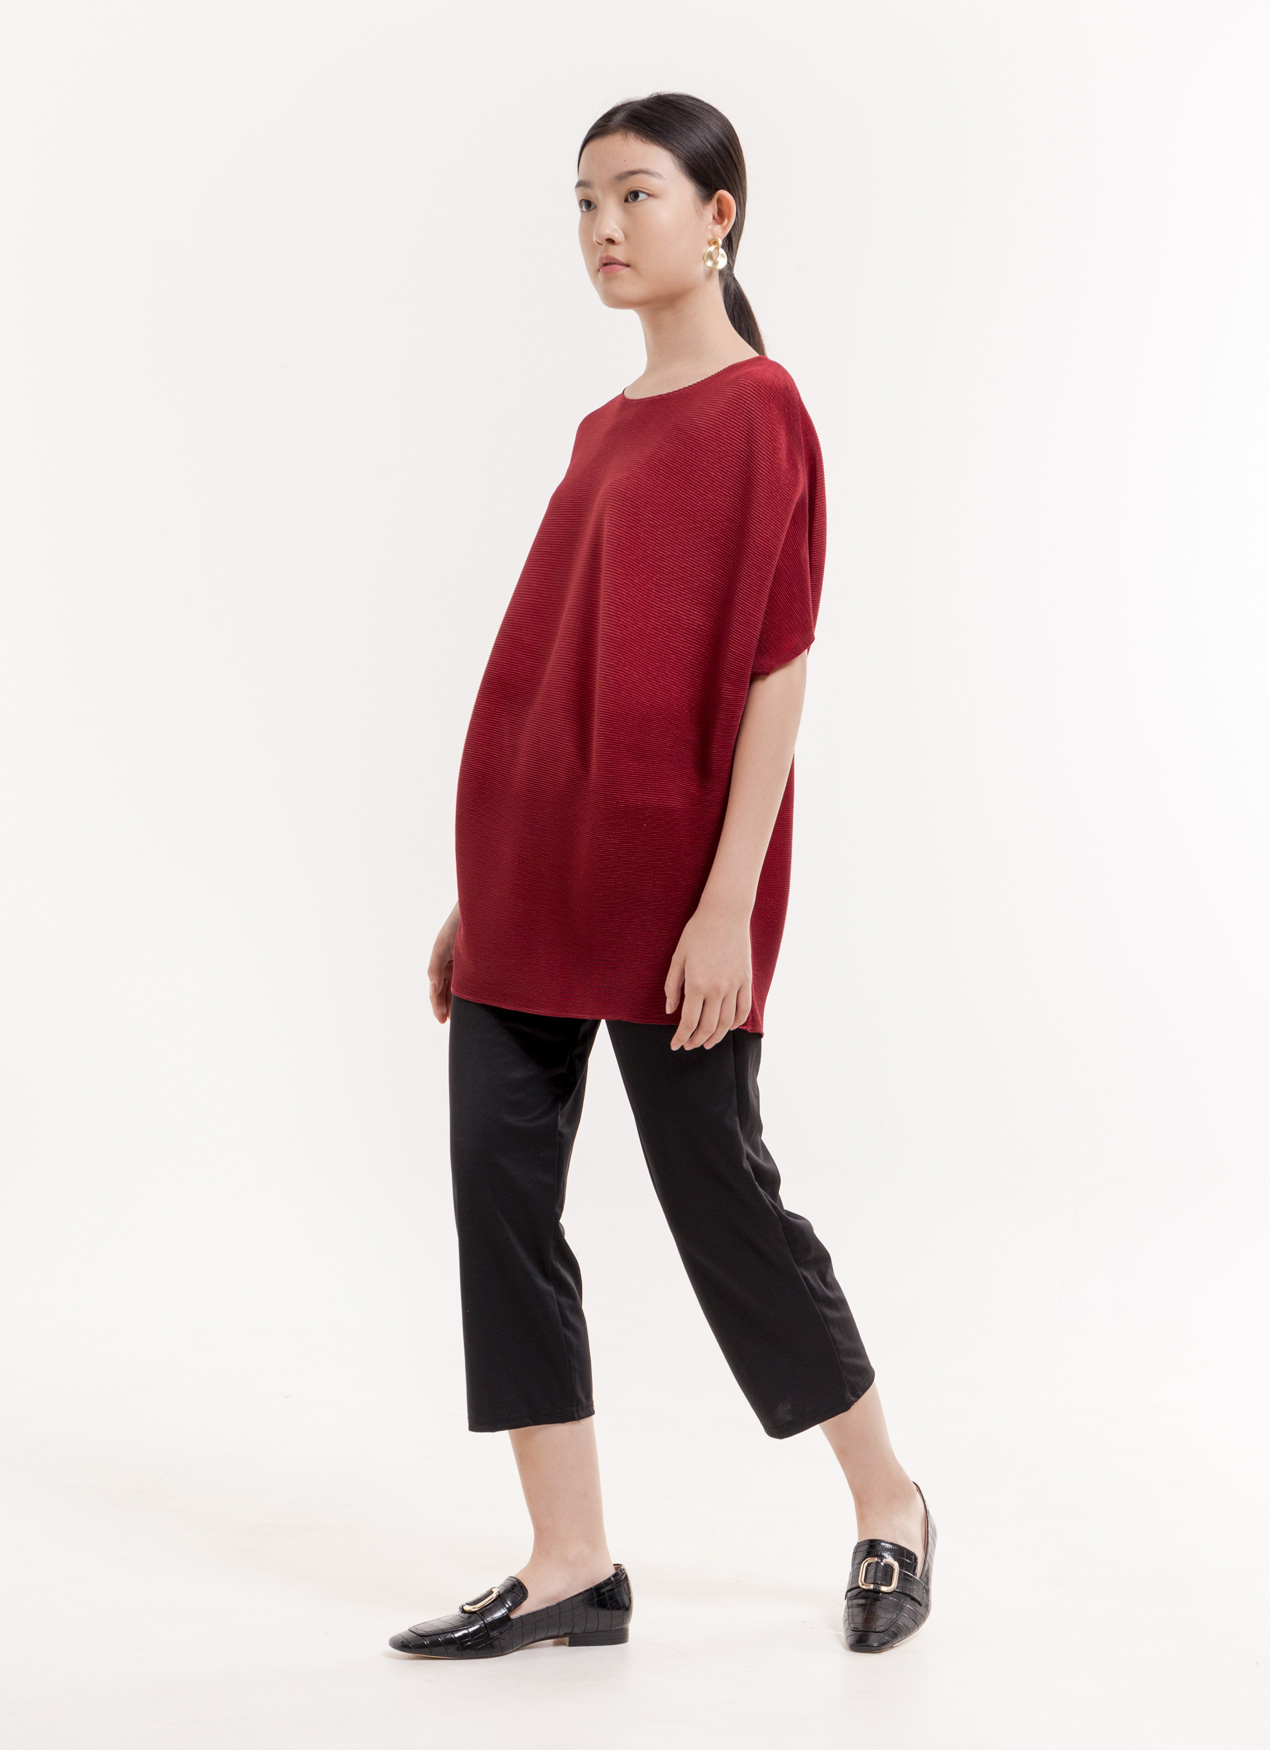 BOWN Loana Top - Red